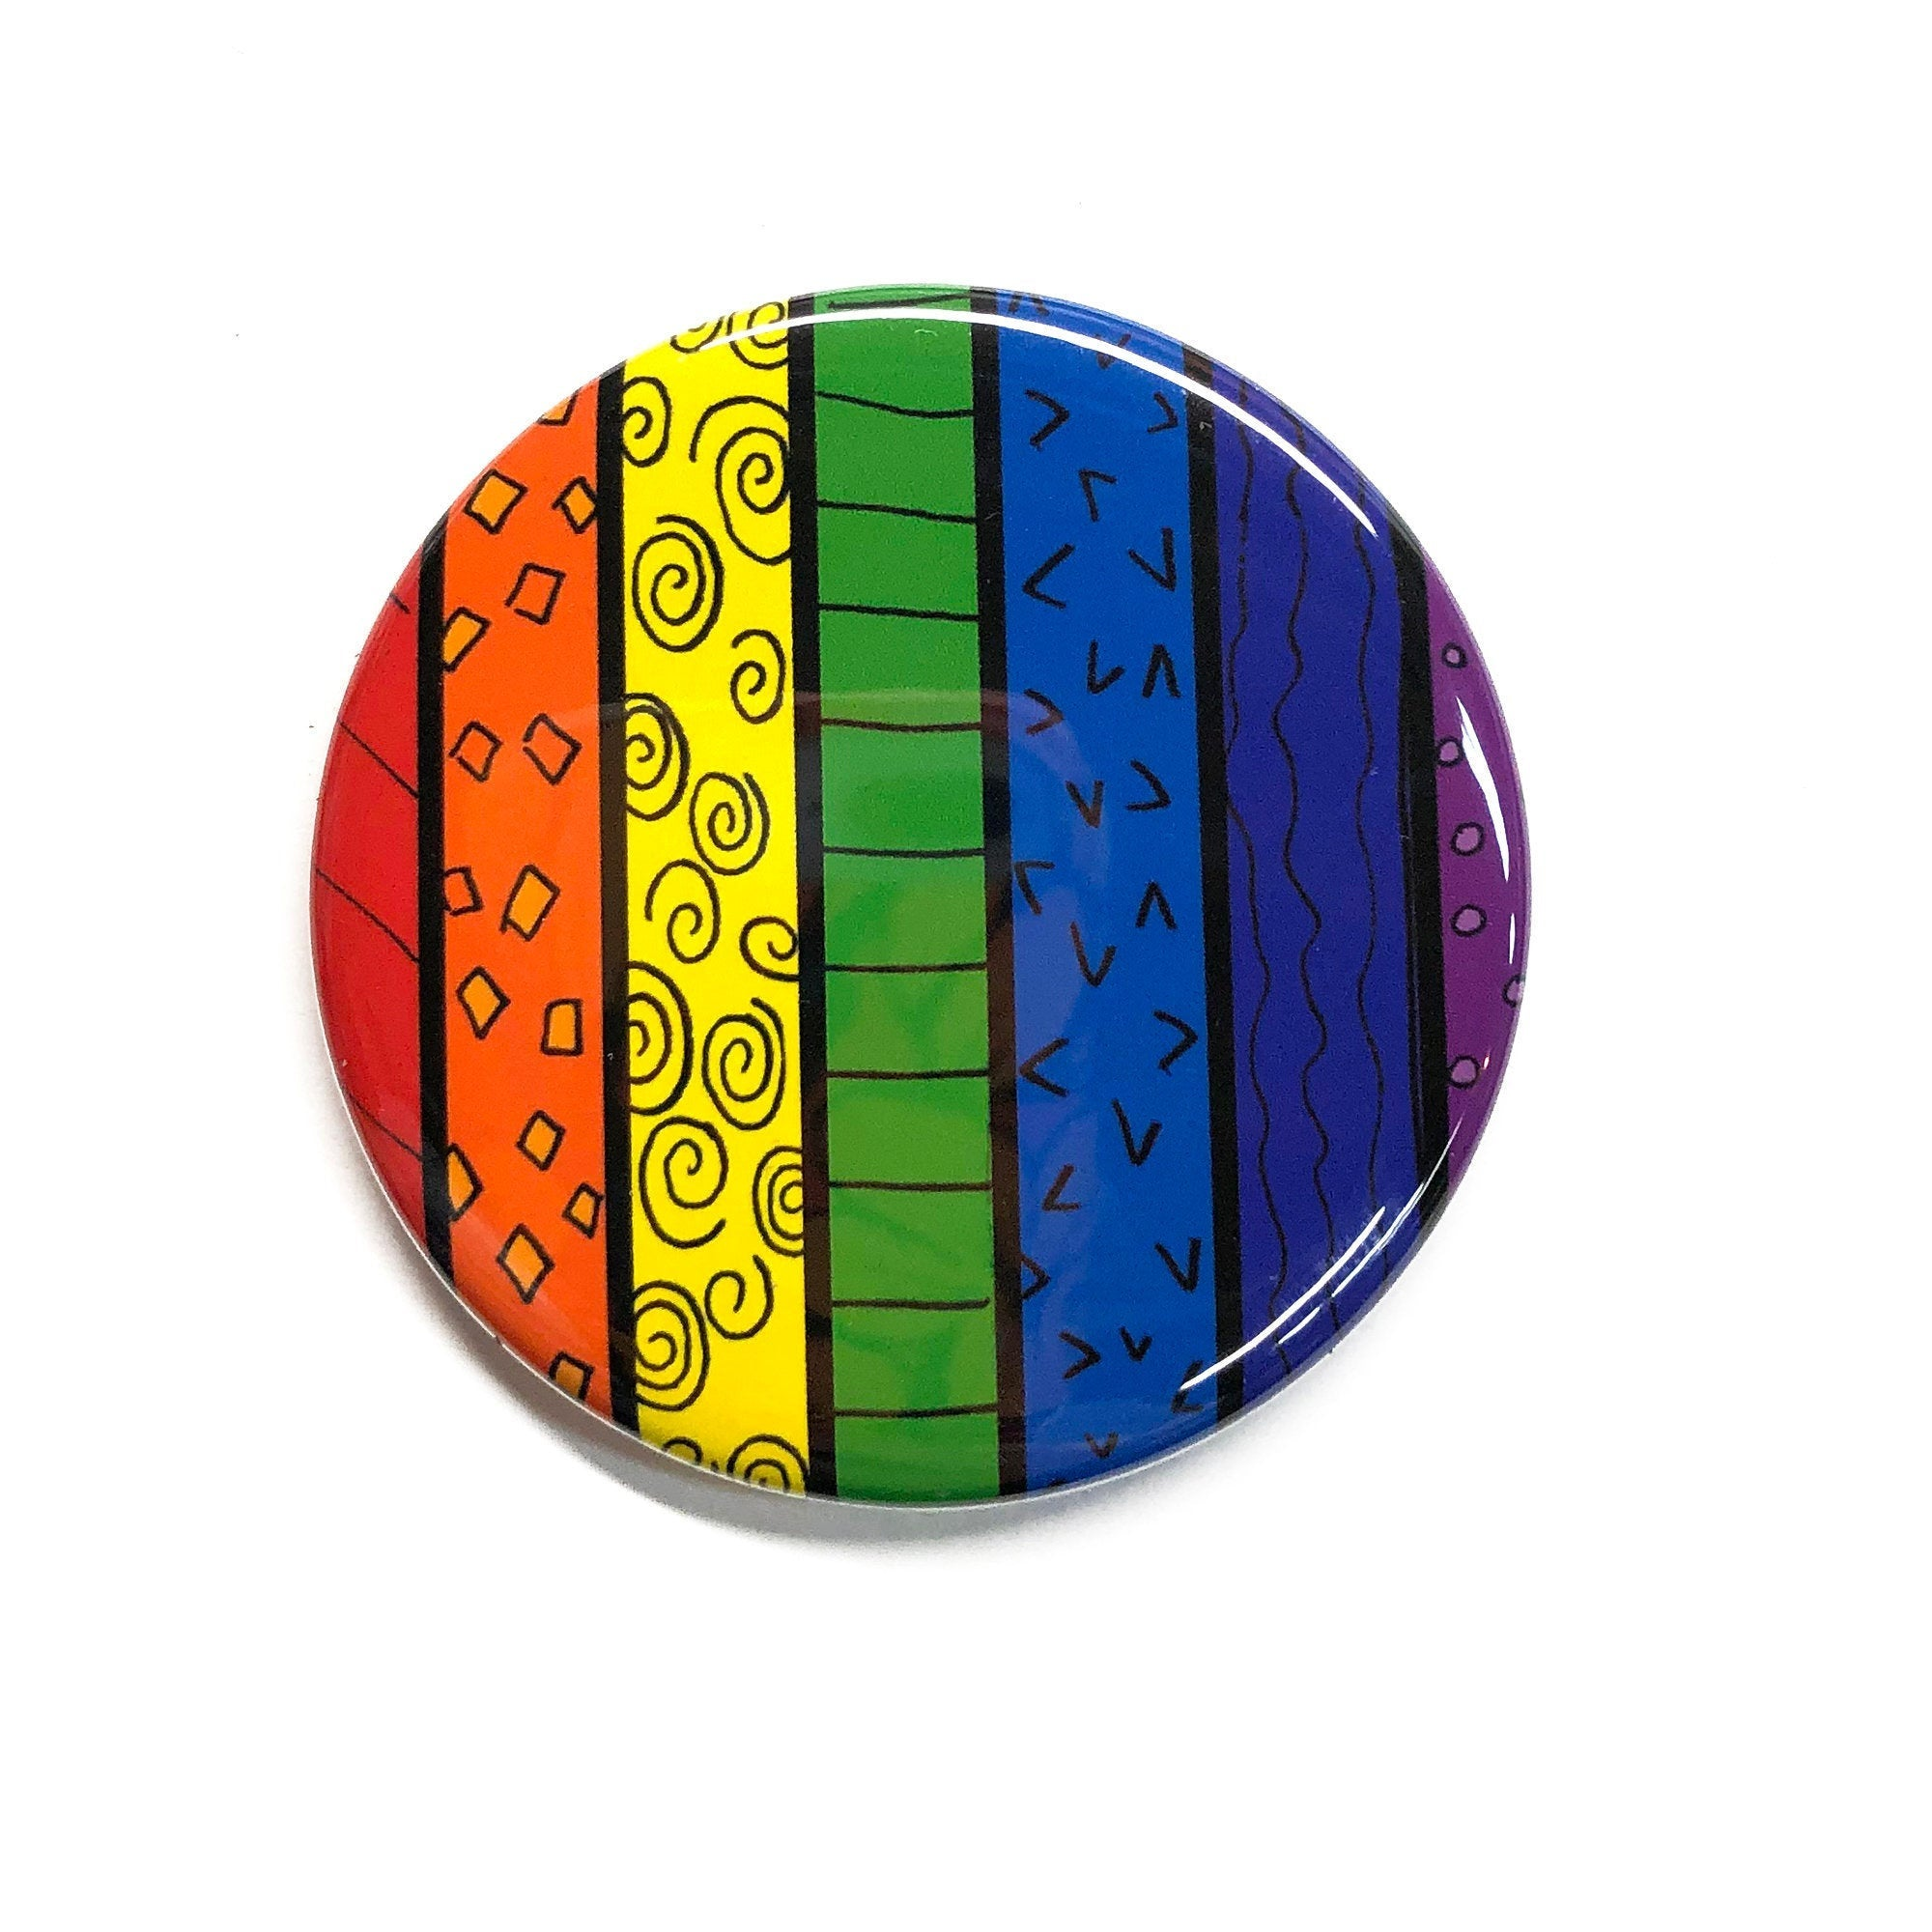 Rainbow Pin, Magnet, or Pocket Mirror